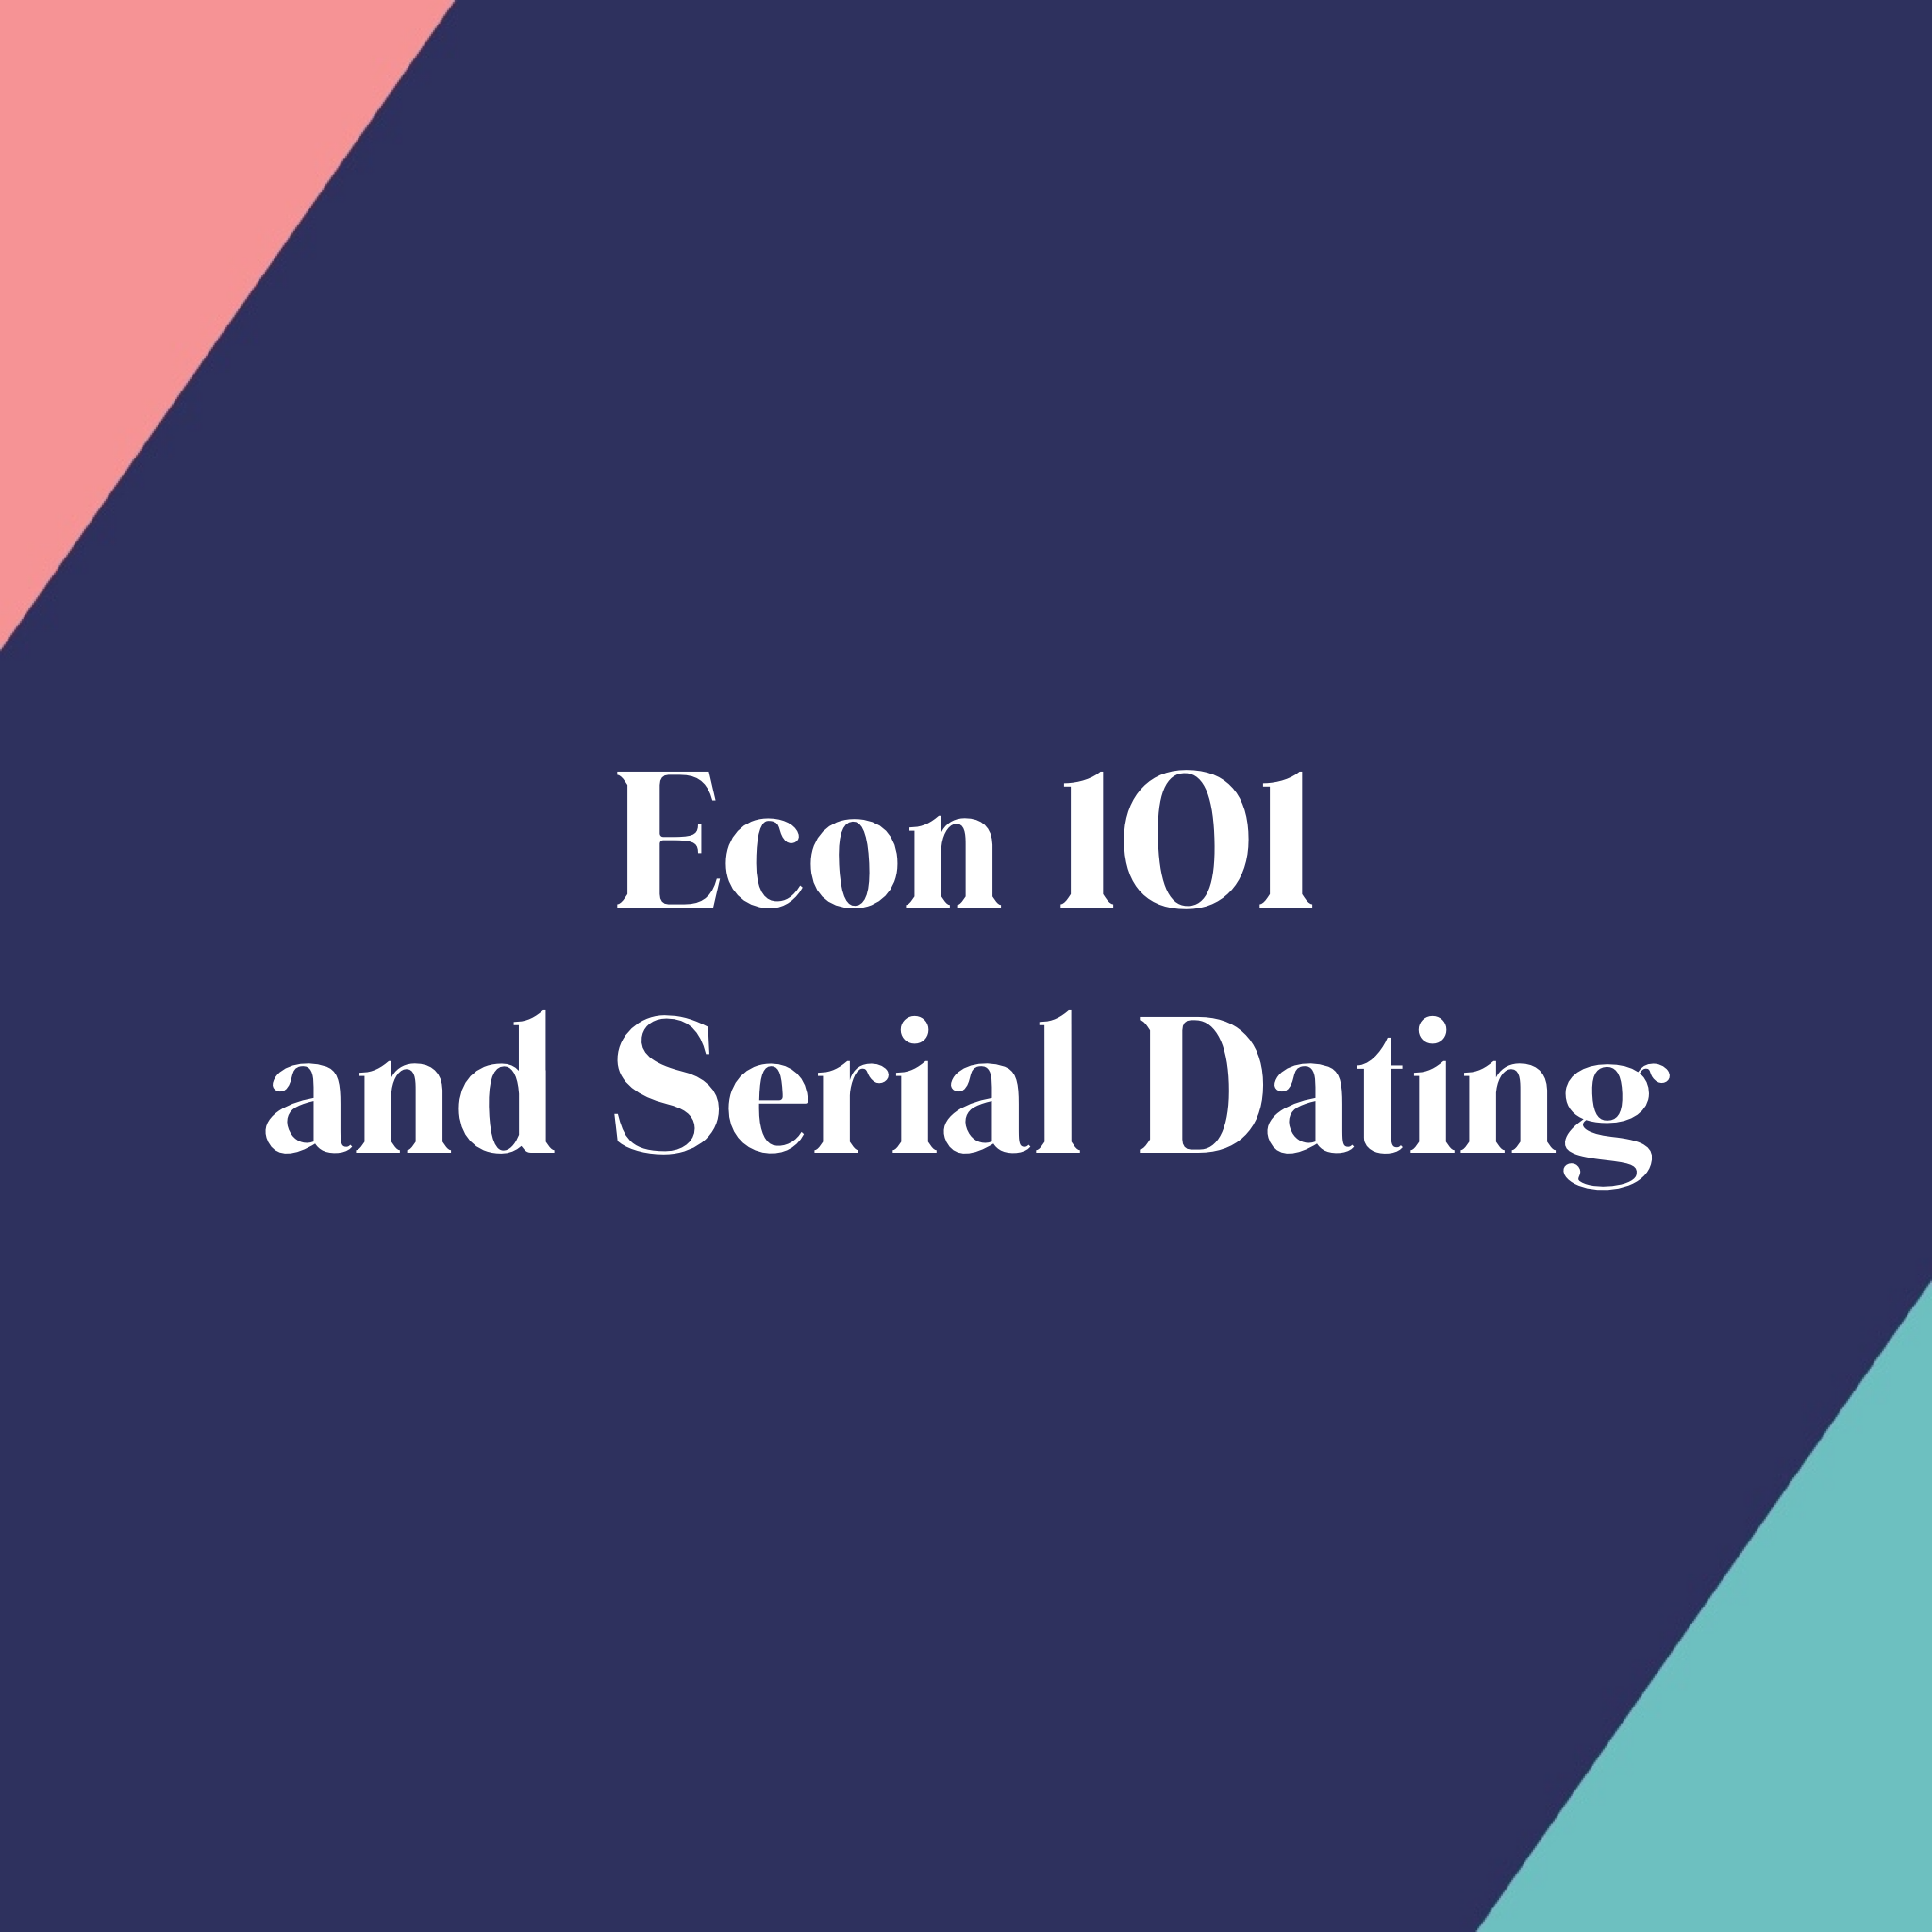 Econ 101 and Serial Dating